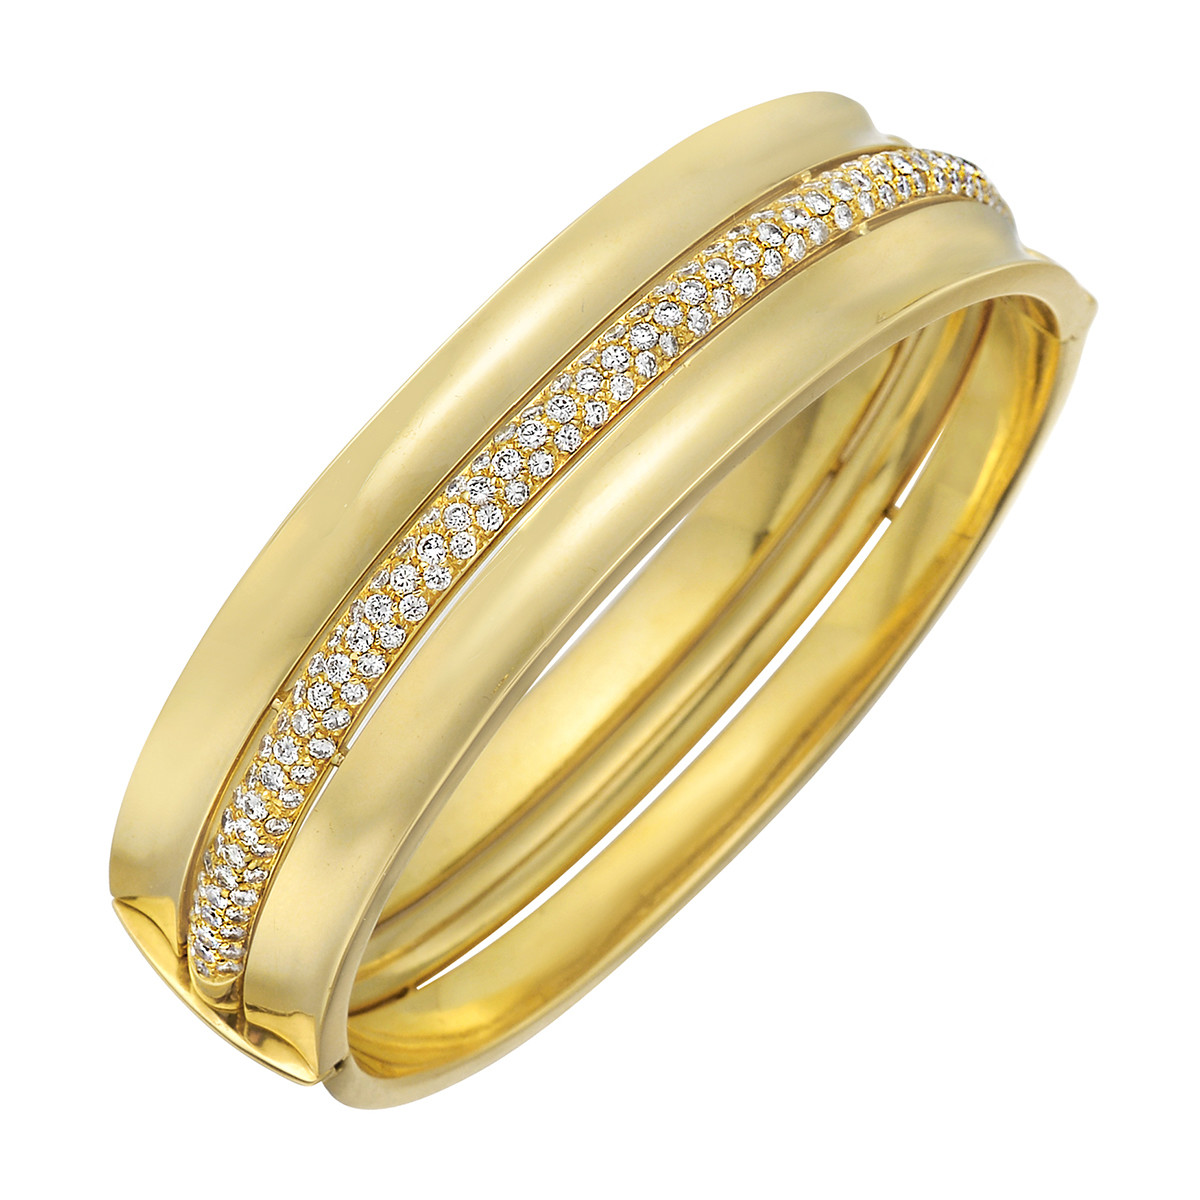 18k Yellow Gold & Diamond Bangle